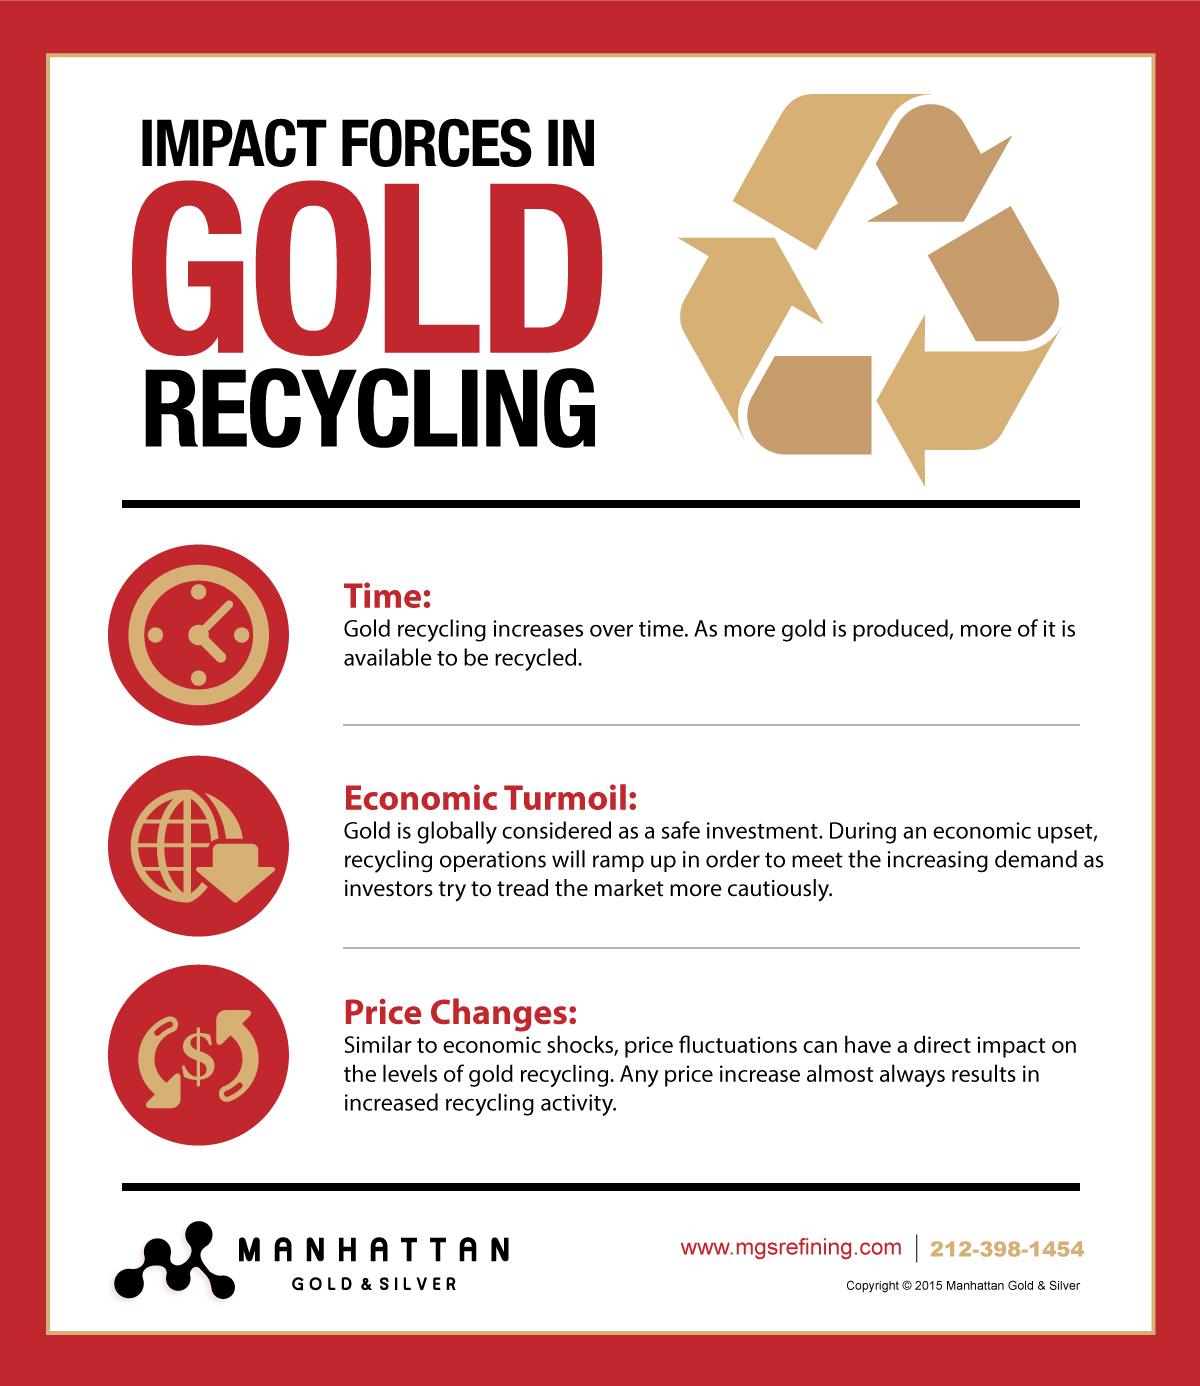 Impact forces in gold recycling infographic – MGS